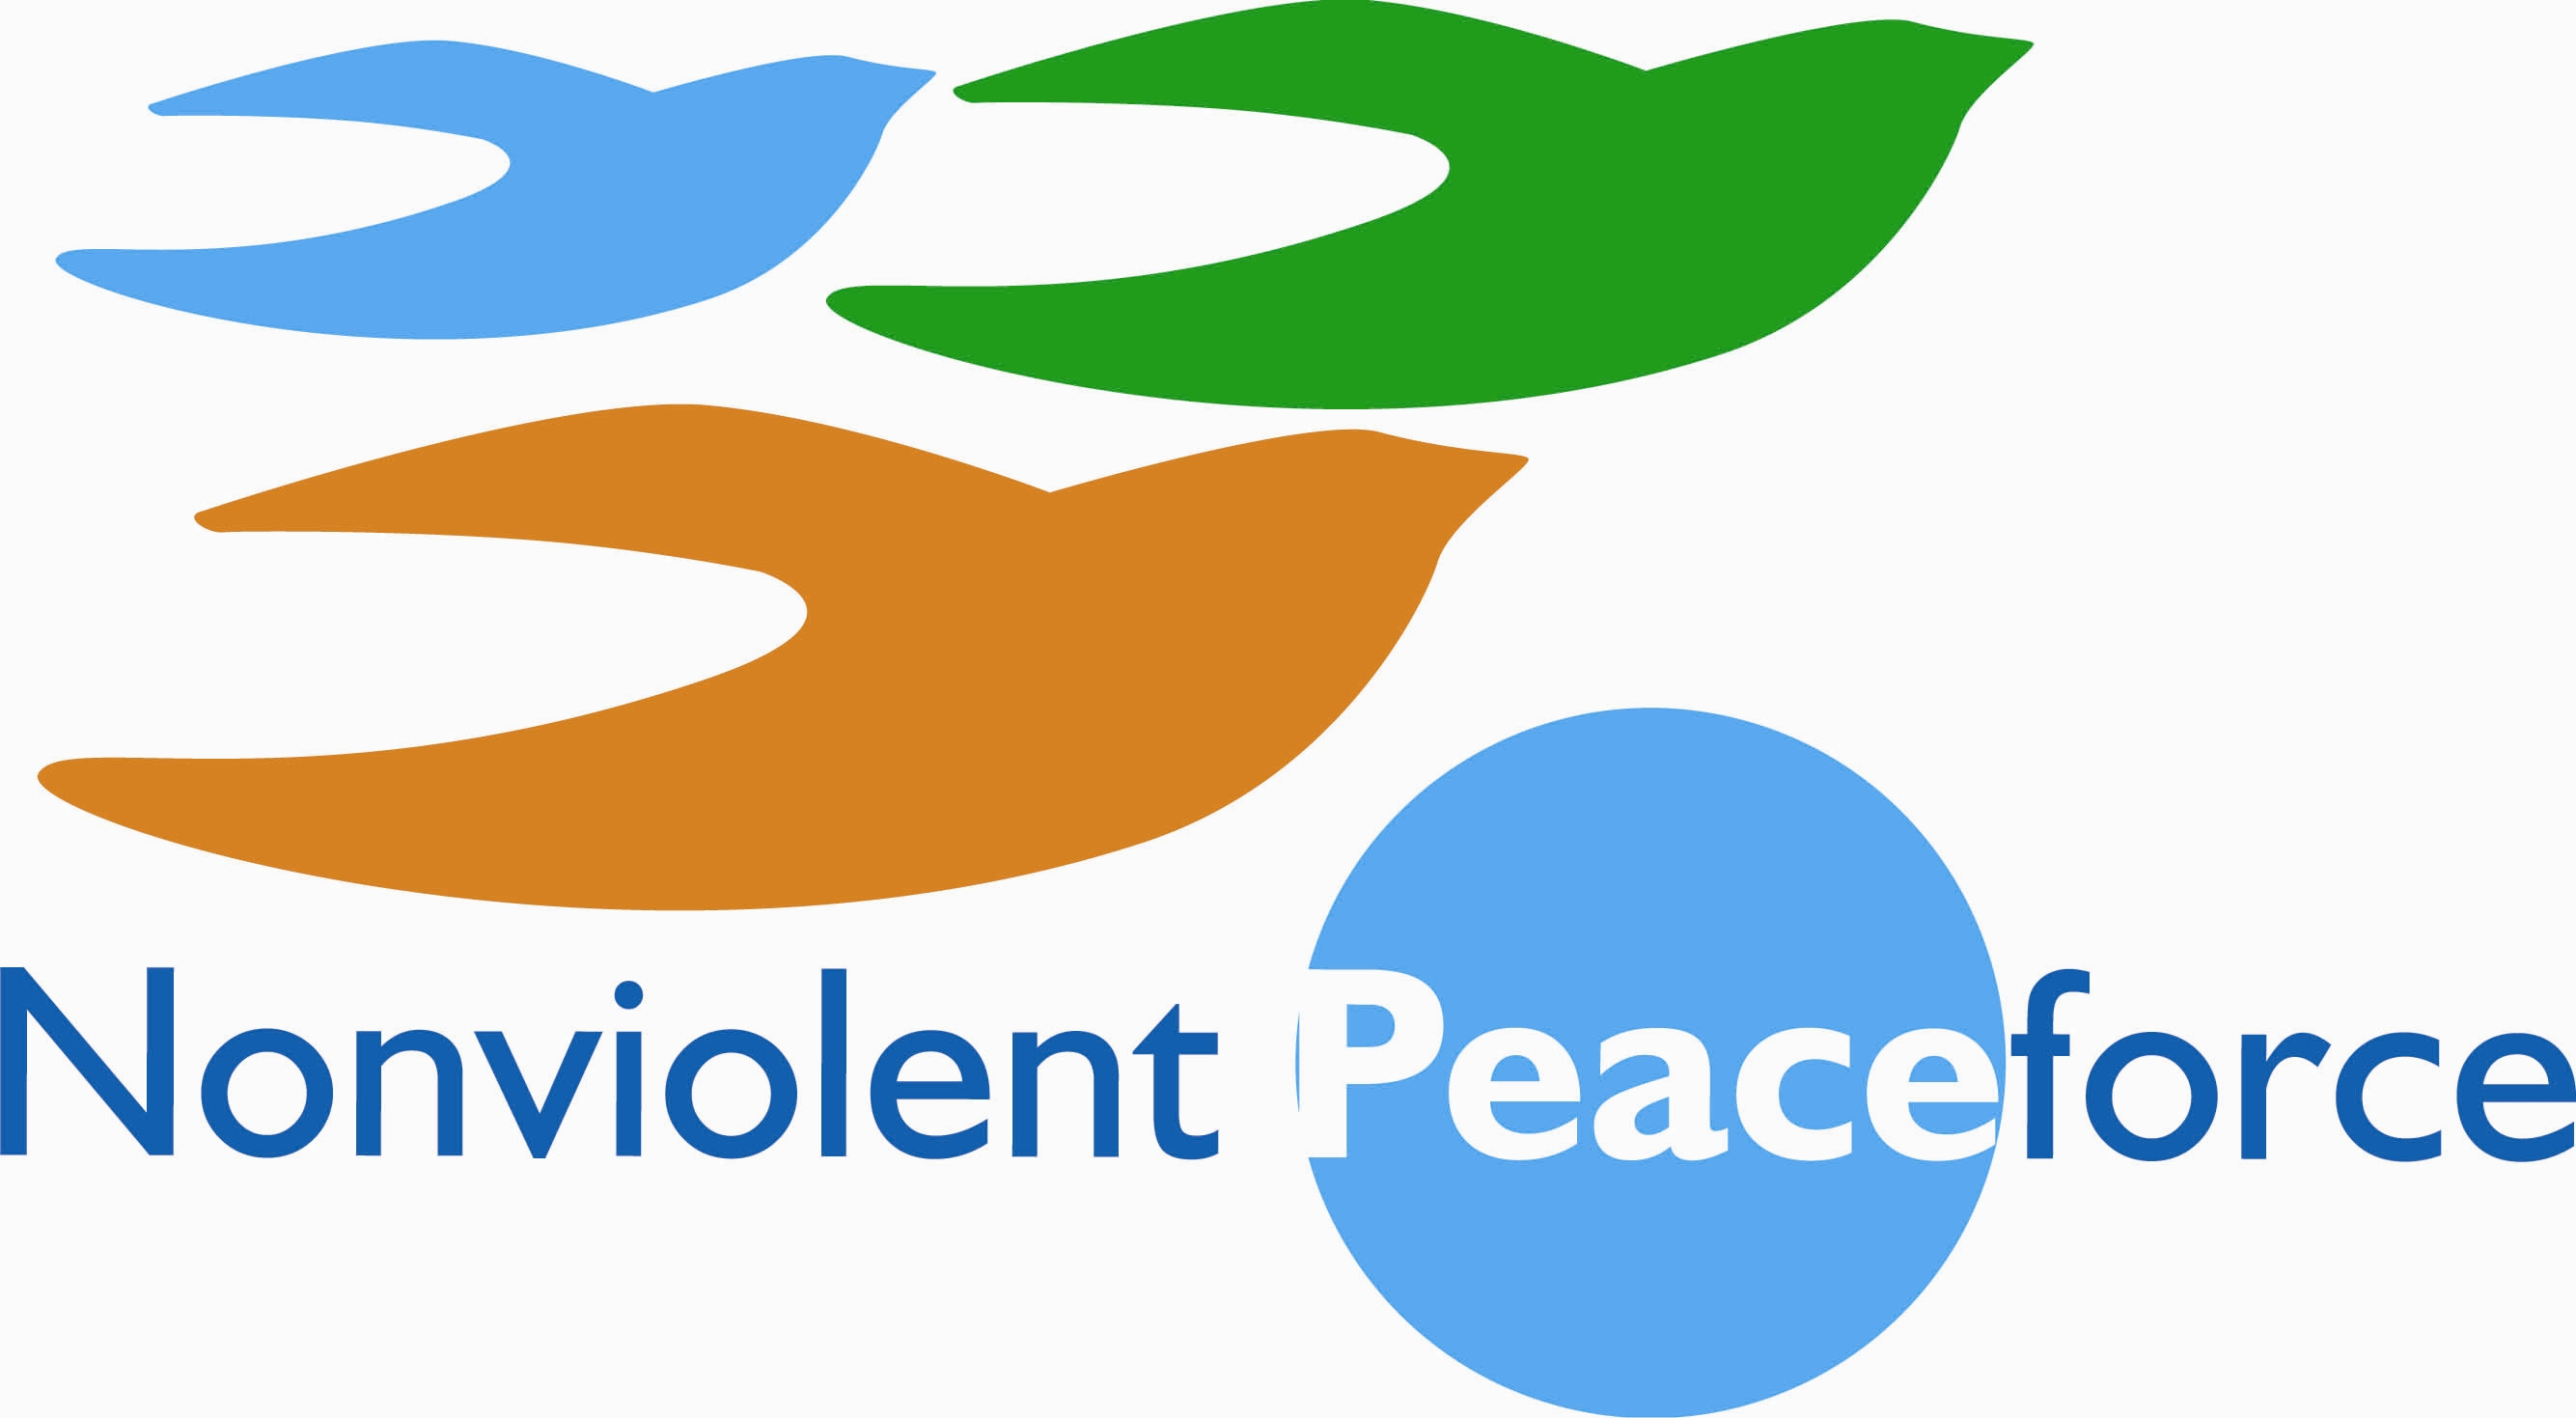 nonviolent peaceforce.gif